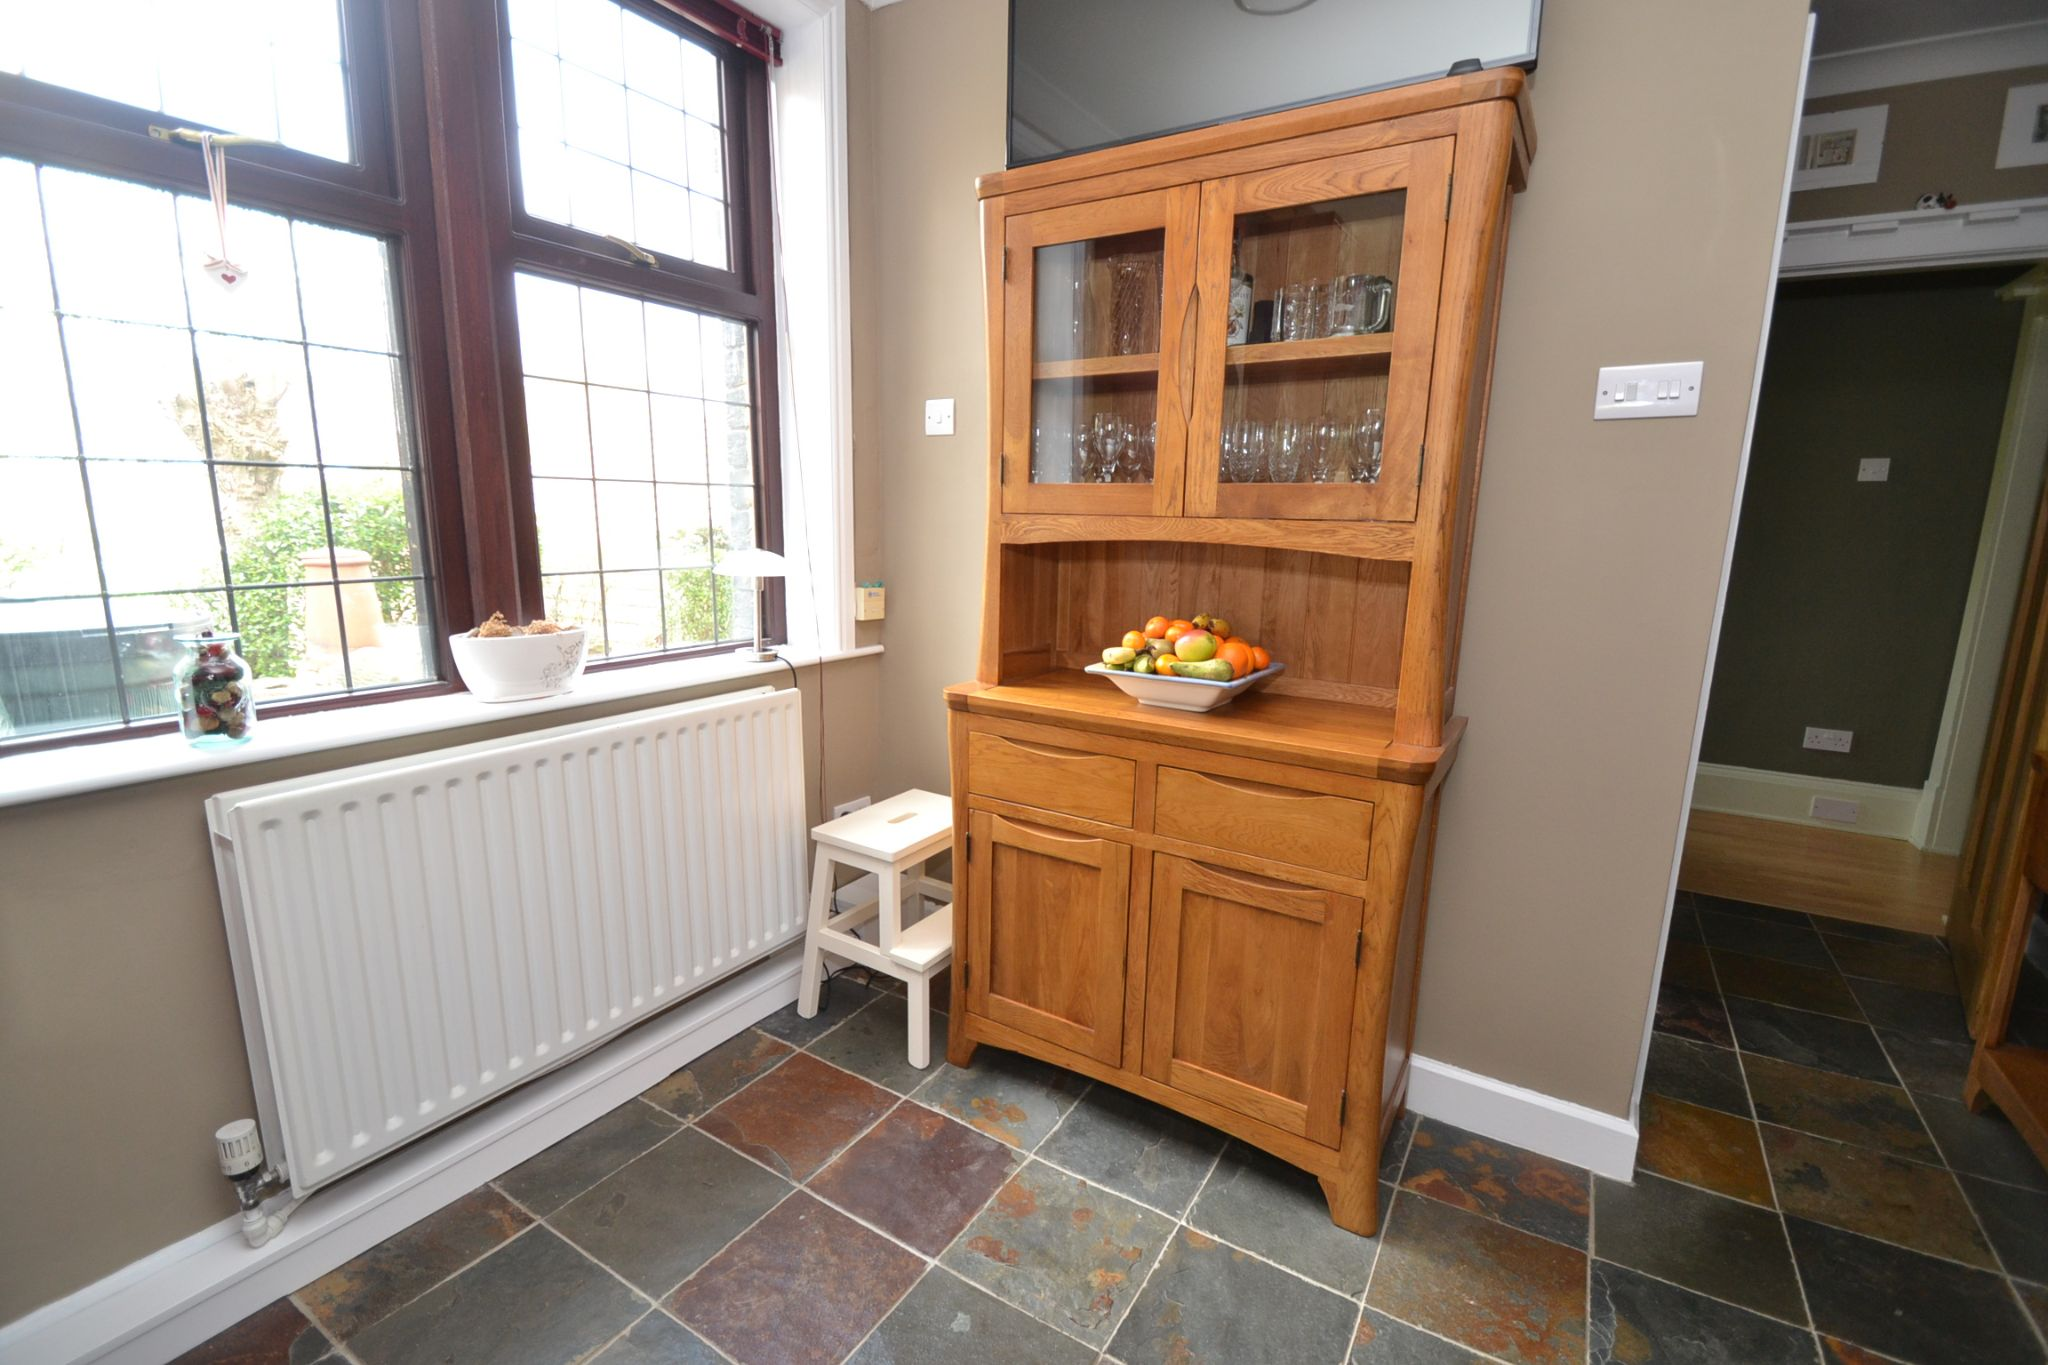 5 Bedroom Semi-detached House For Sale - Photograph 14